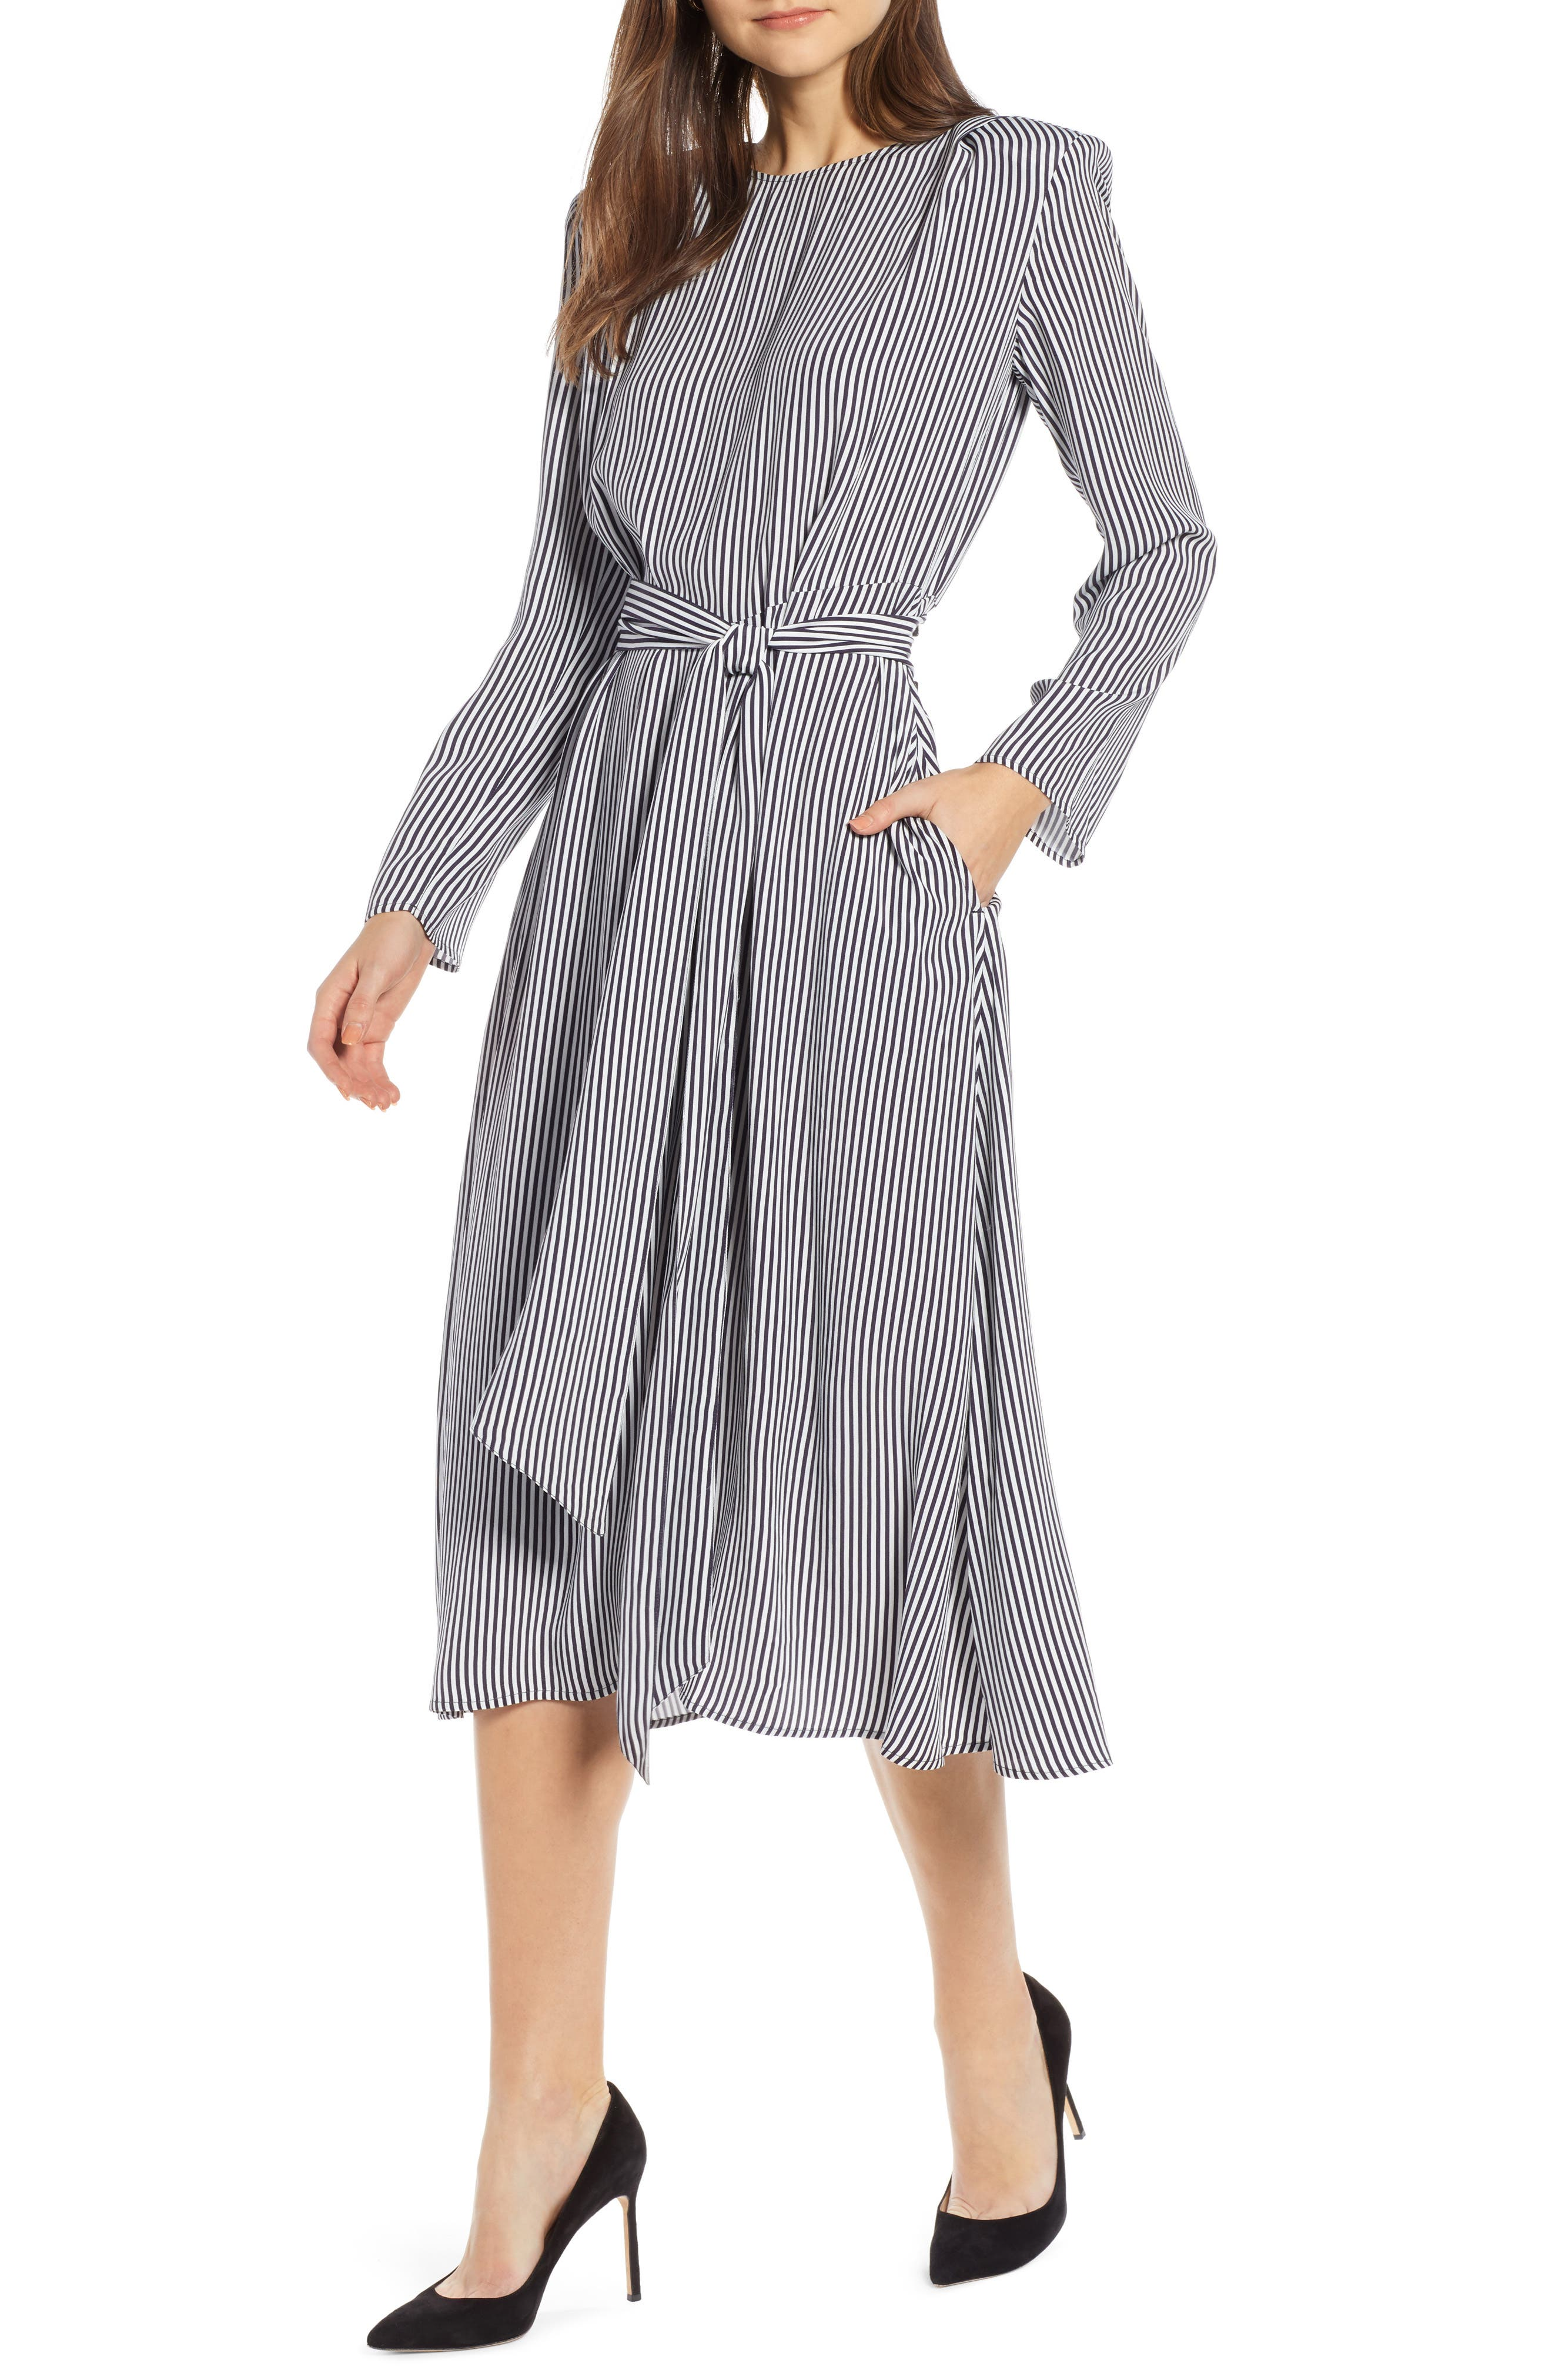 Belted Midi Dress,                             Main thumbnail 1, color,                             NAVY NIGHT TWO STRIPE